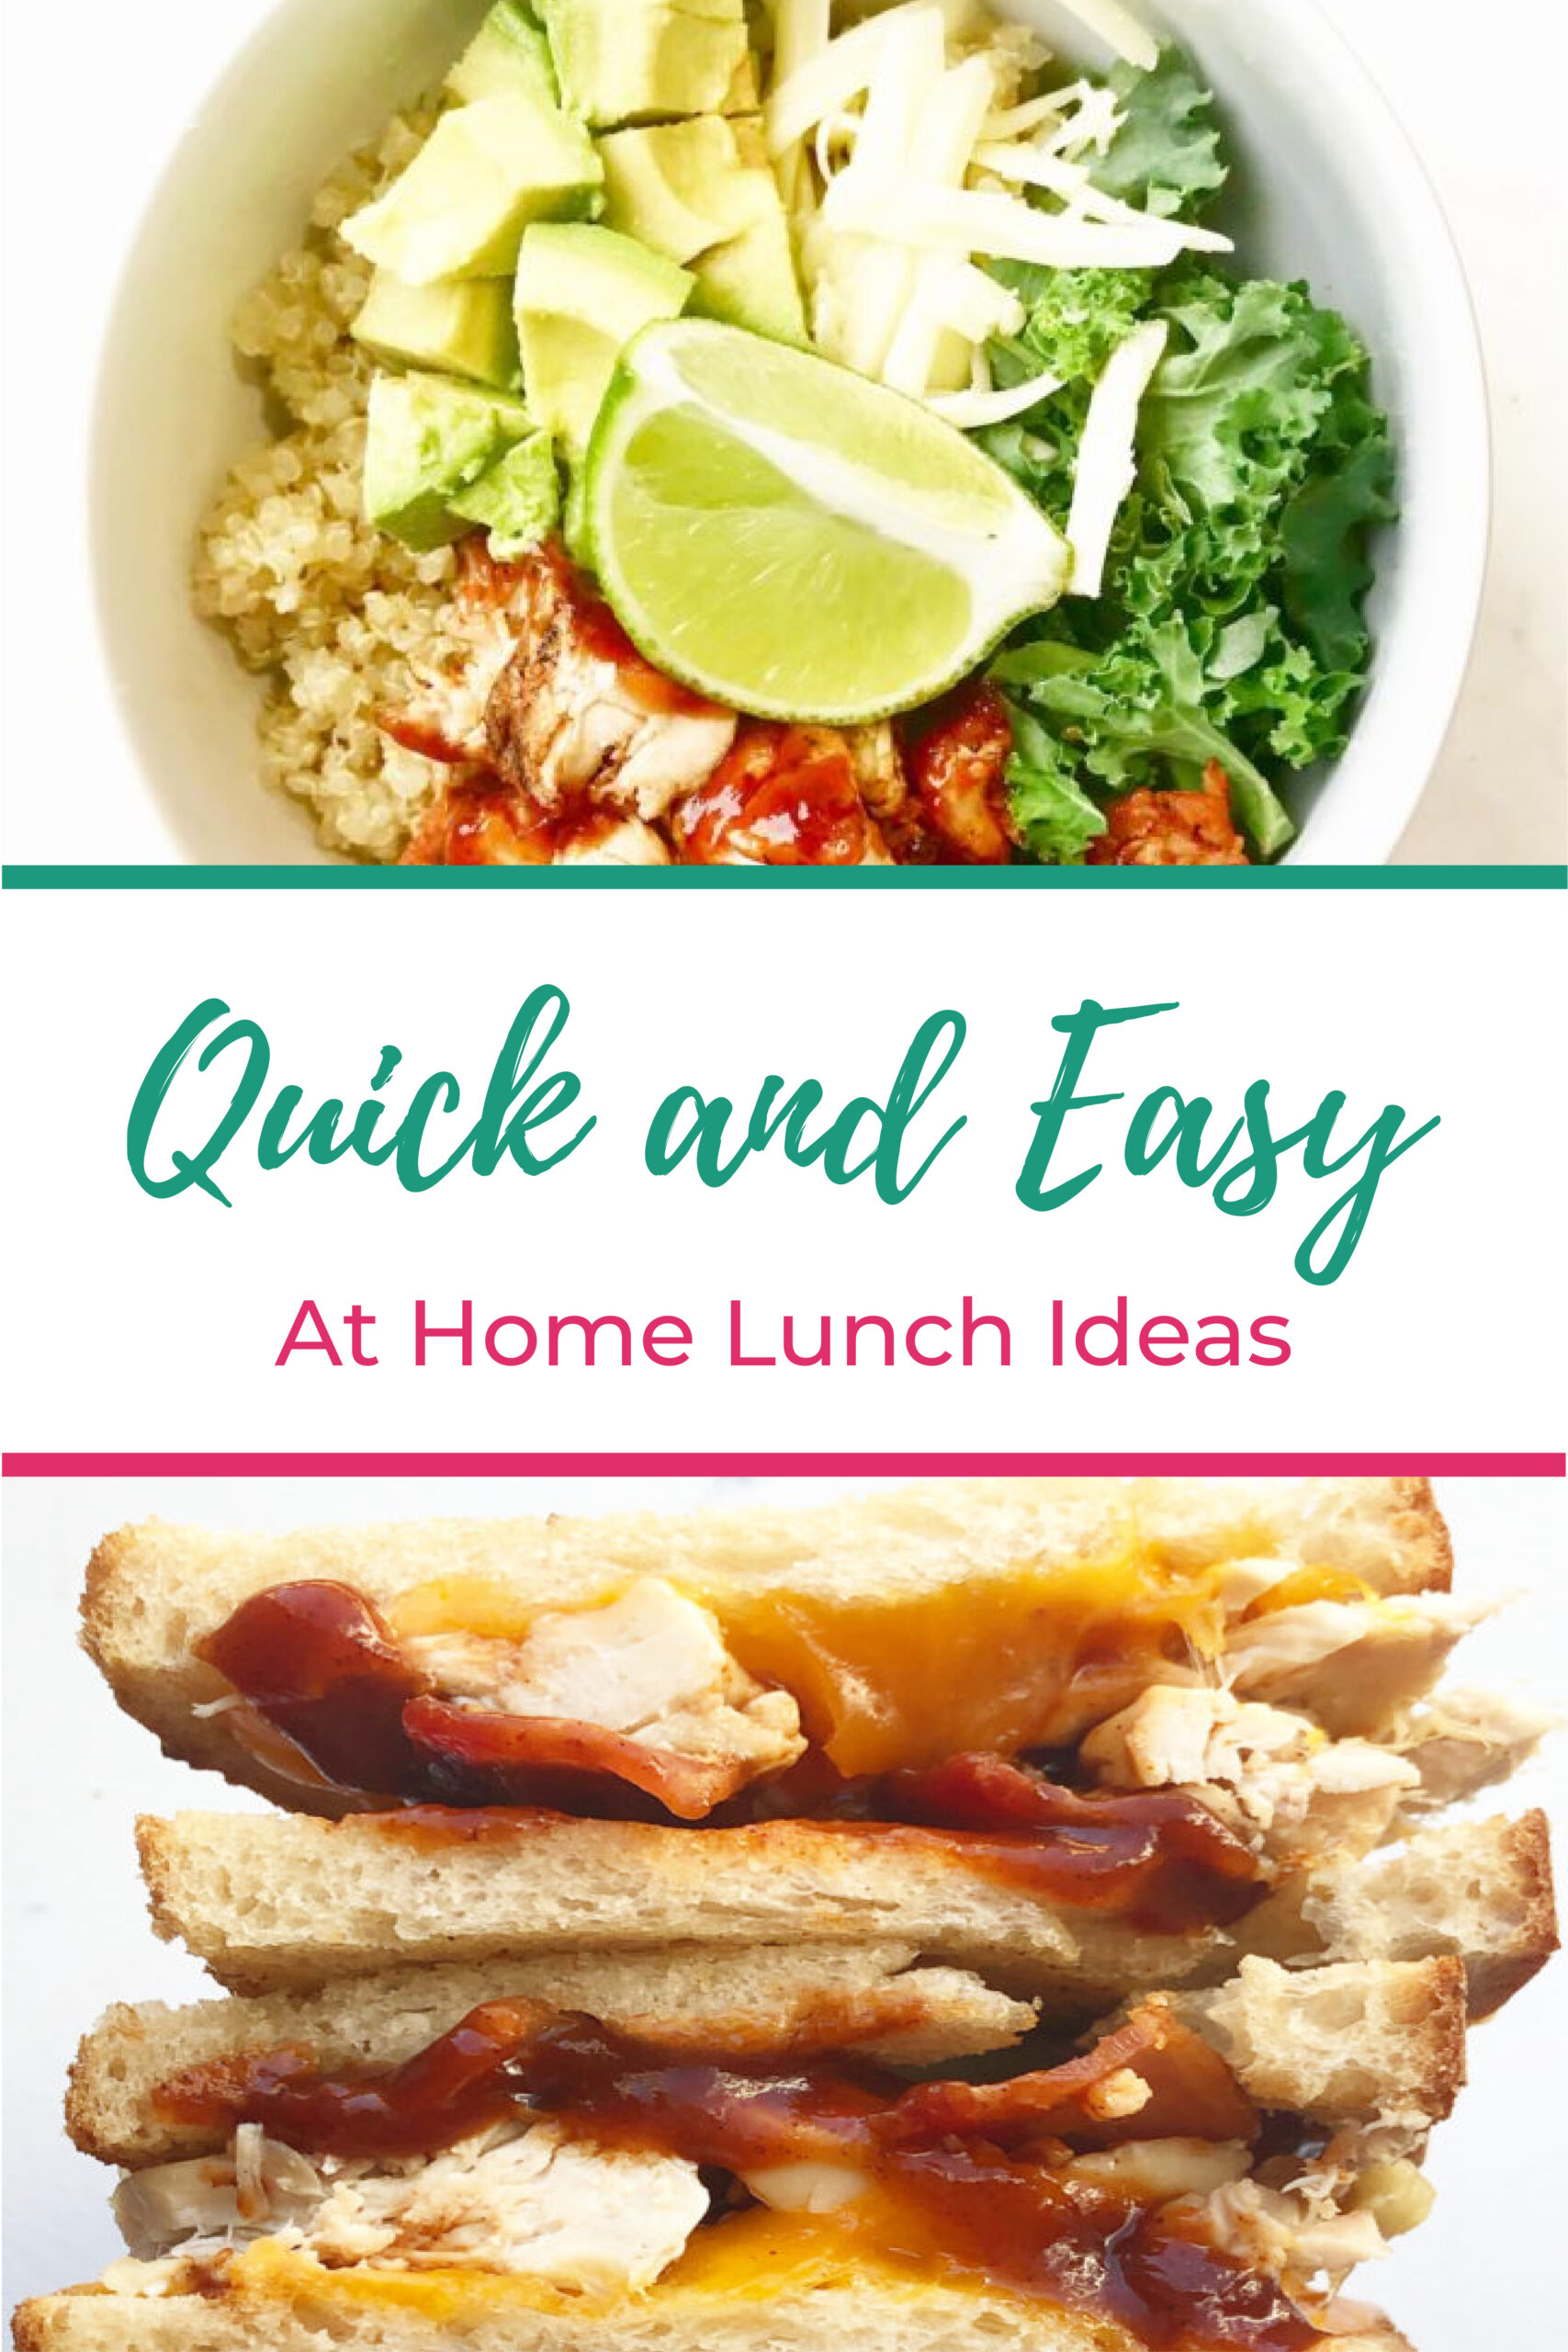 Quick and Easy At Home Lunch Ideas